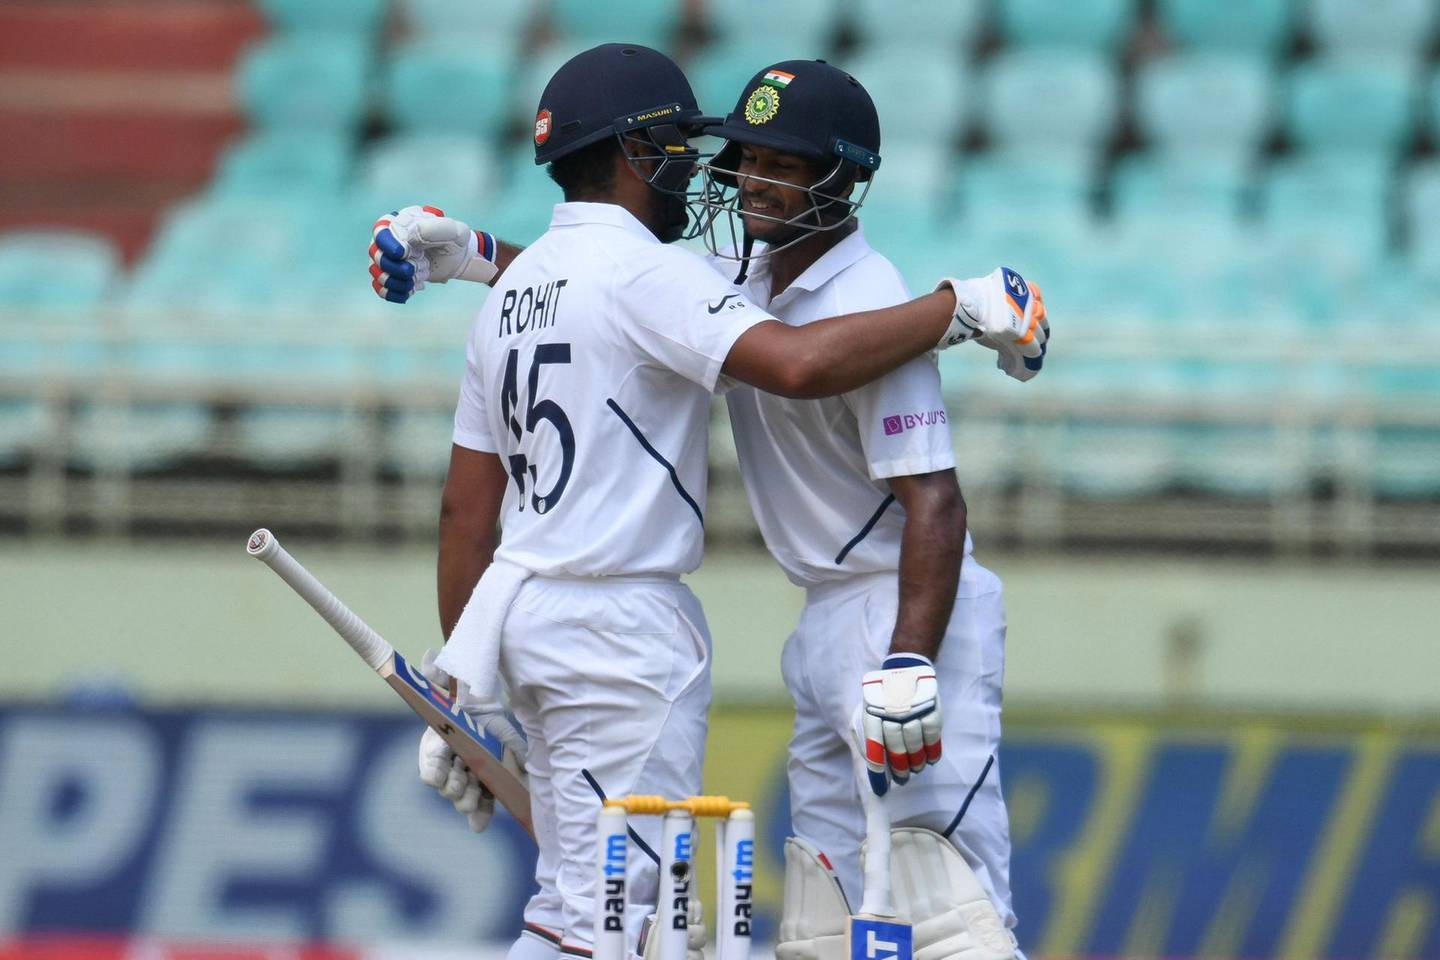 Indian cricketer Mayank Agarwal (R) and Rohit Sharma (L) greet each other during the first day's play of the first Test match between India and South Africa at the Dr. Y.S. Rajasekhara Reddy ACA-VDCA Cricket Stadium in Visakhapatnam on October 2, 2019. ----IMAGE RESTRICTED TO EDITORIAL USE - STRICTLY NO COMMERCIAL USE----- / GETTYOUT  / AFP / NOAH SEELAM / ----IMAGE RESTRICTED TO EDITORIAL USE - STRICTLY NO COMMERCIAL USE----- / GETTYOUT